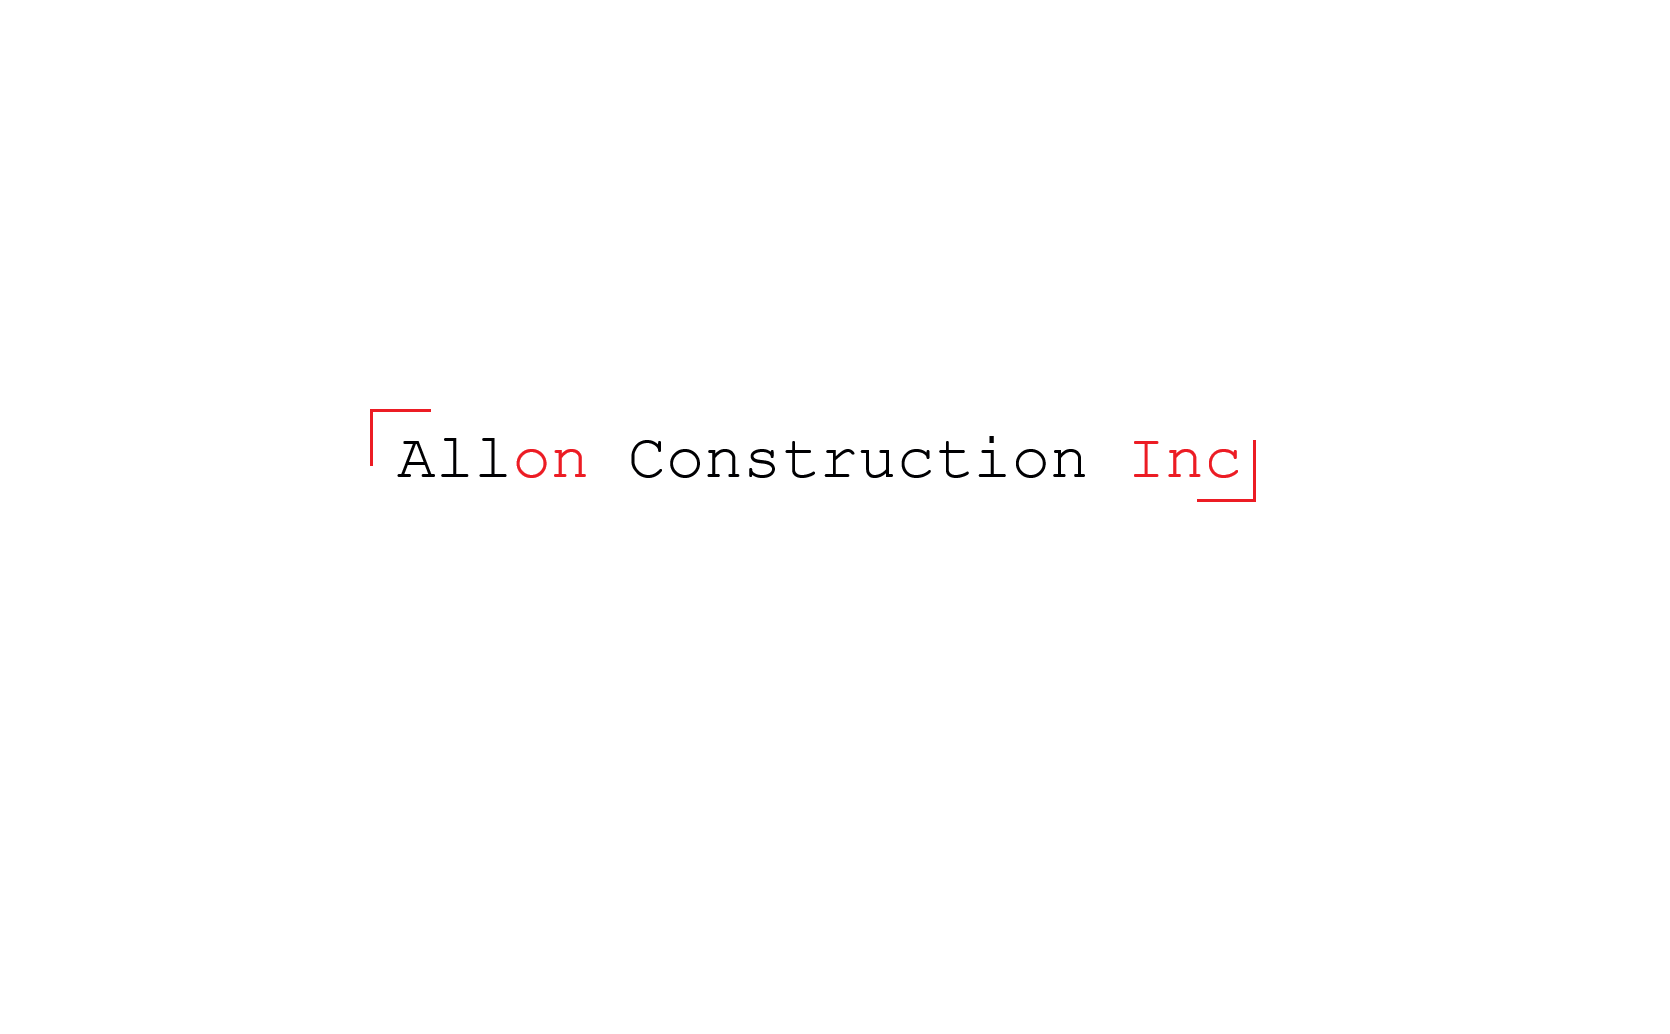 Allon Construction Inc